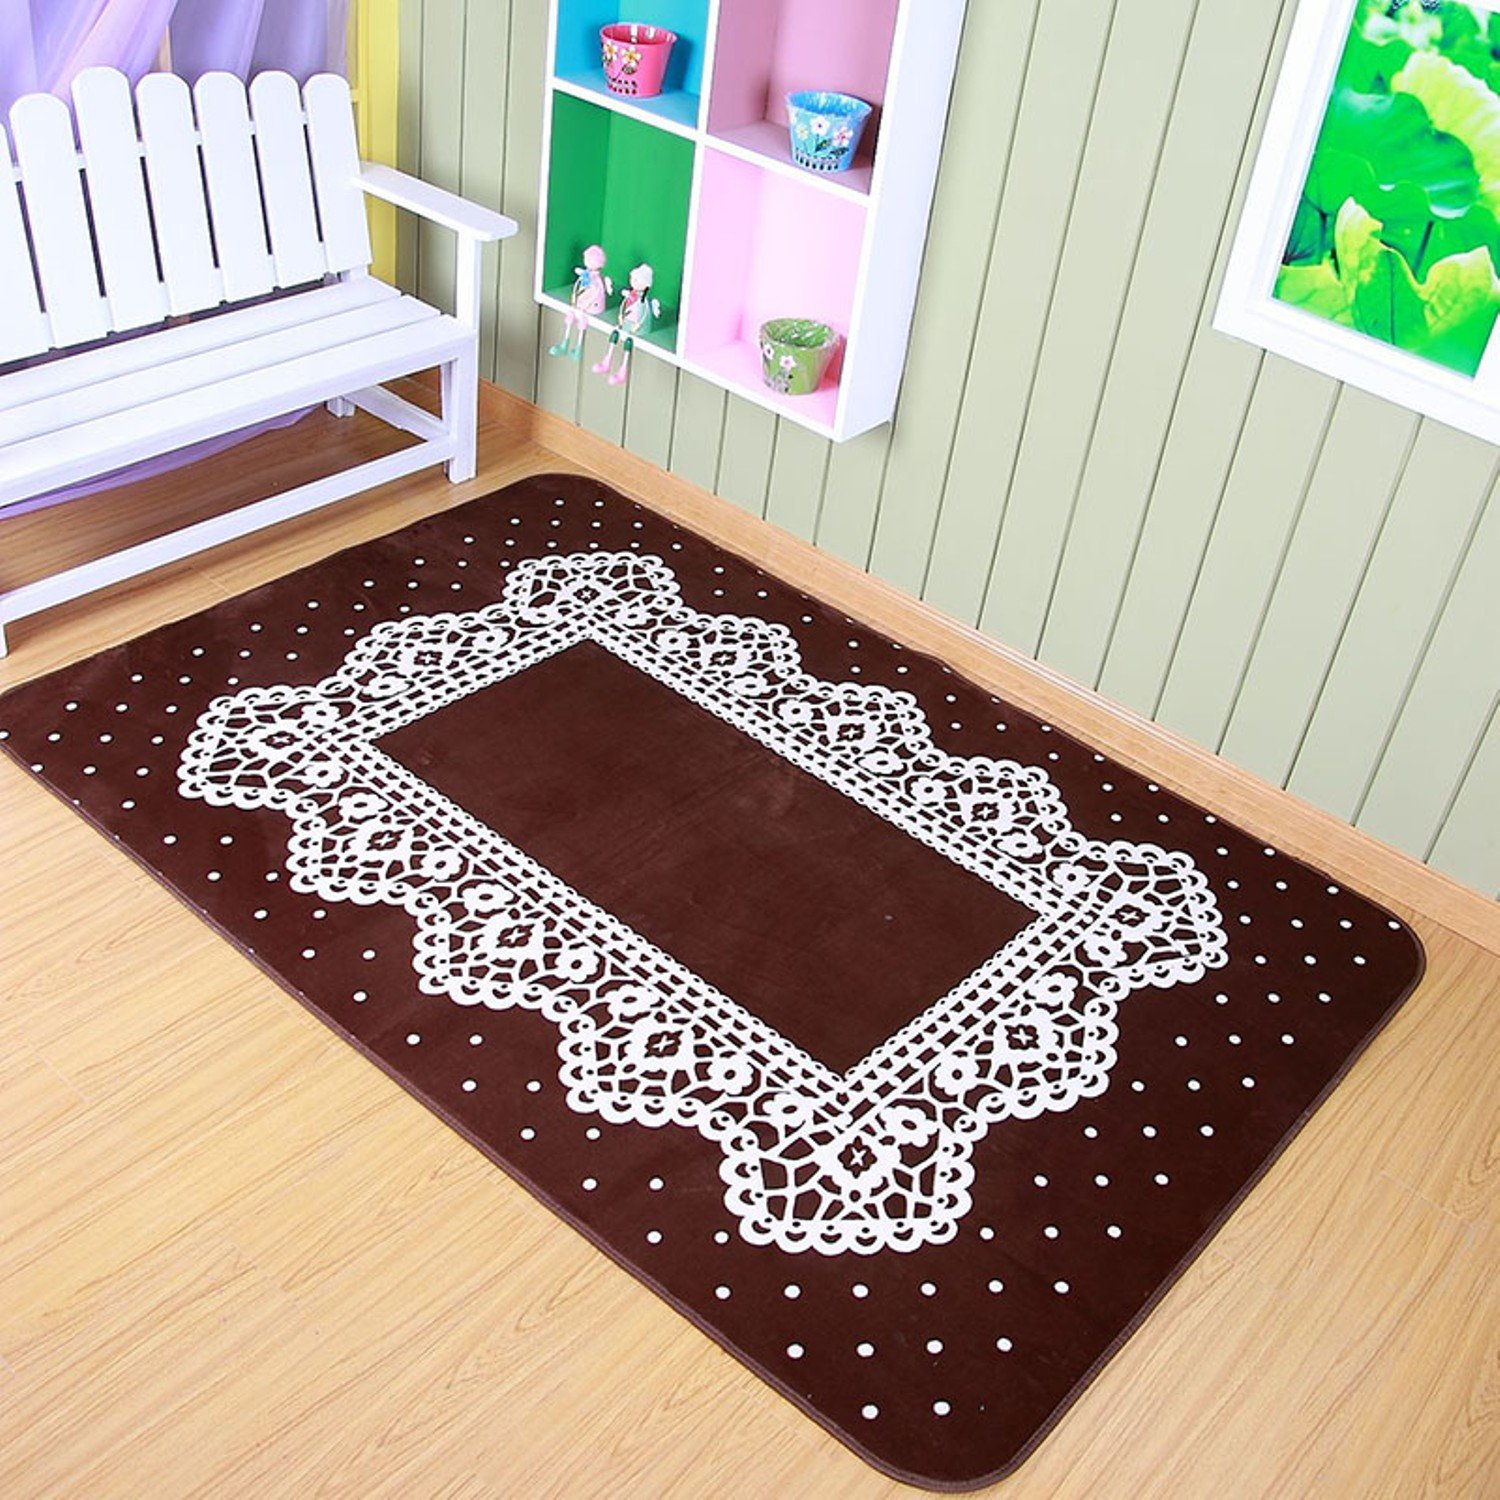 Farley Velvet Carpets Bedroom Rugs 130x185cm Area Rug Children Play Game Floor Mat Easy To Clean, Decorate Your Room, Beautify Home. by Floor Games